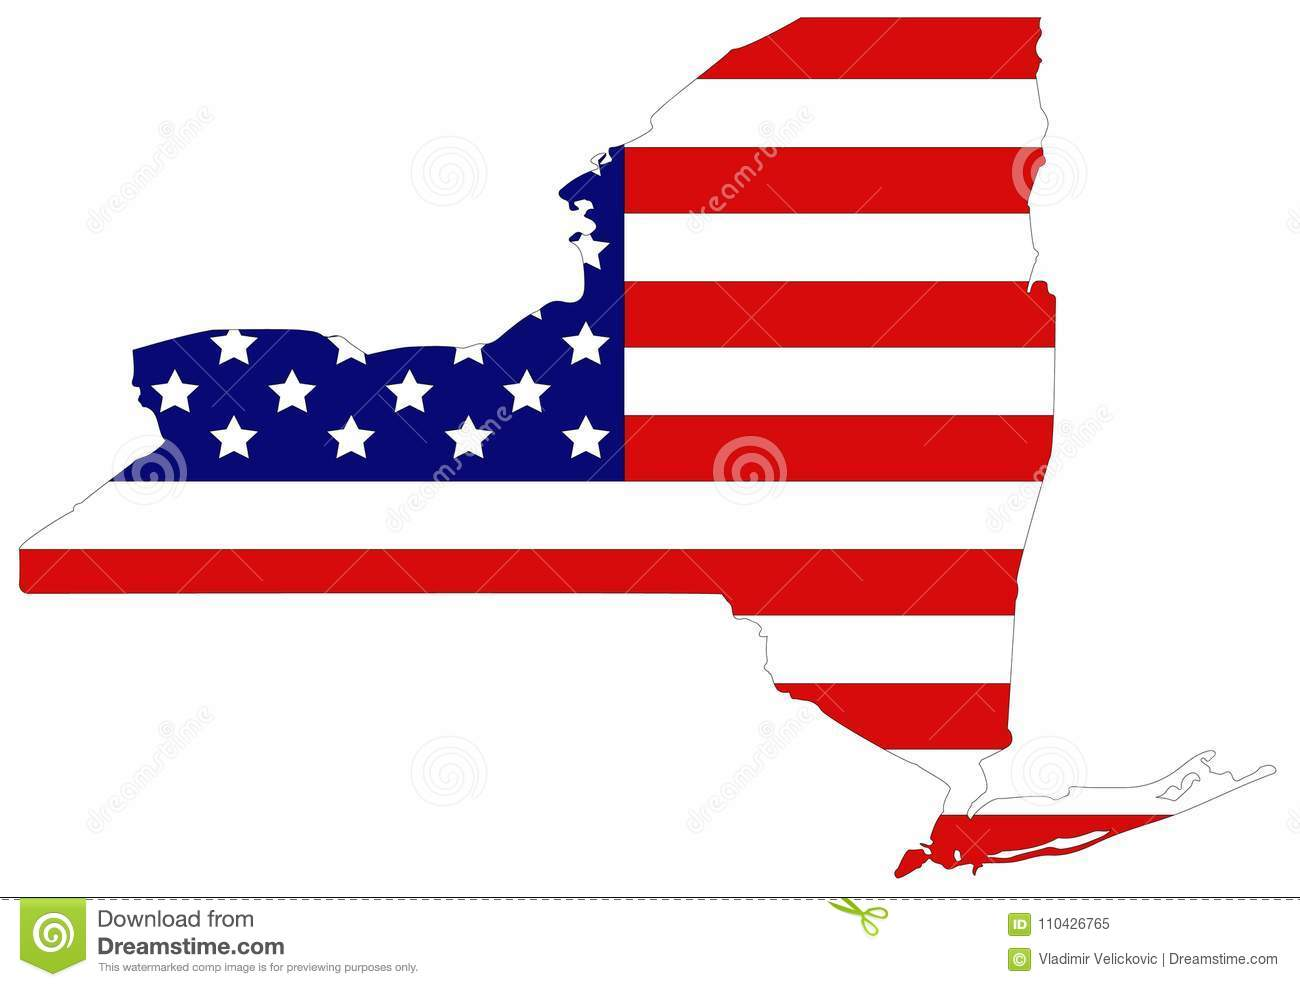 New York On The Map Of Usa.New York State Map With Usa Flag State In The Northeastern United